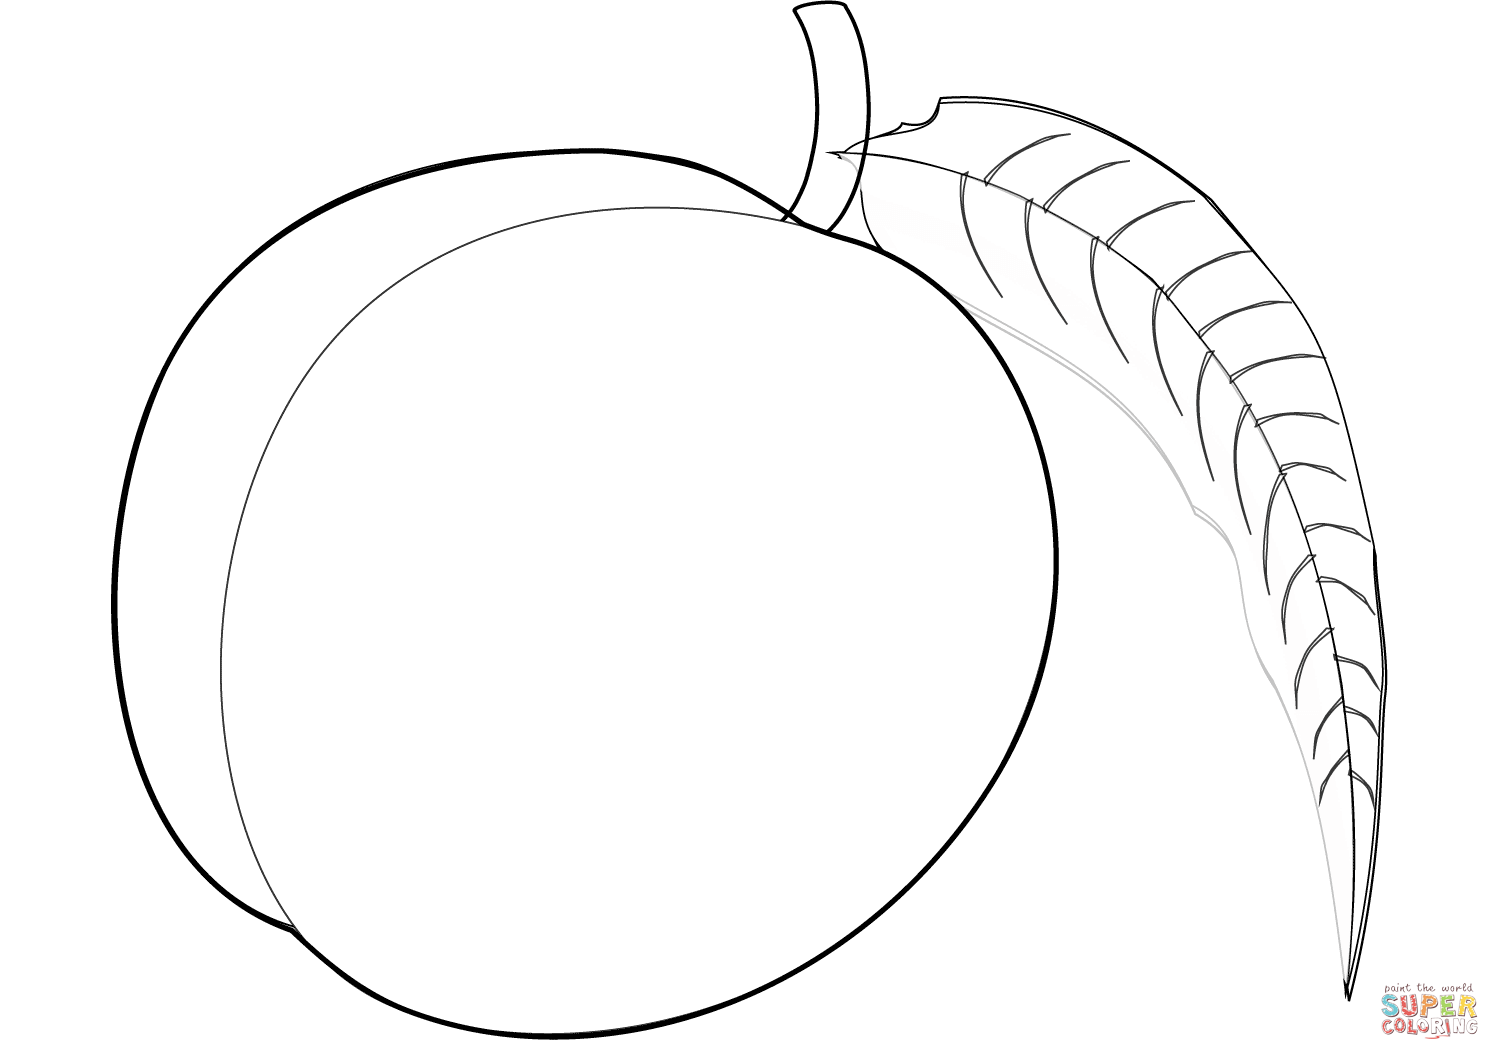 peach coloring pages peach coloring pages download and print peach coloring pages peach coloring pages